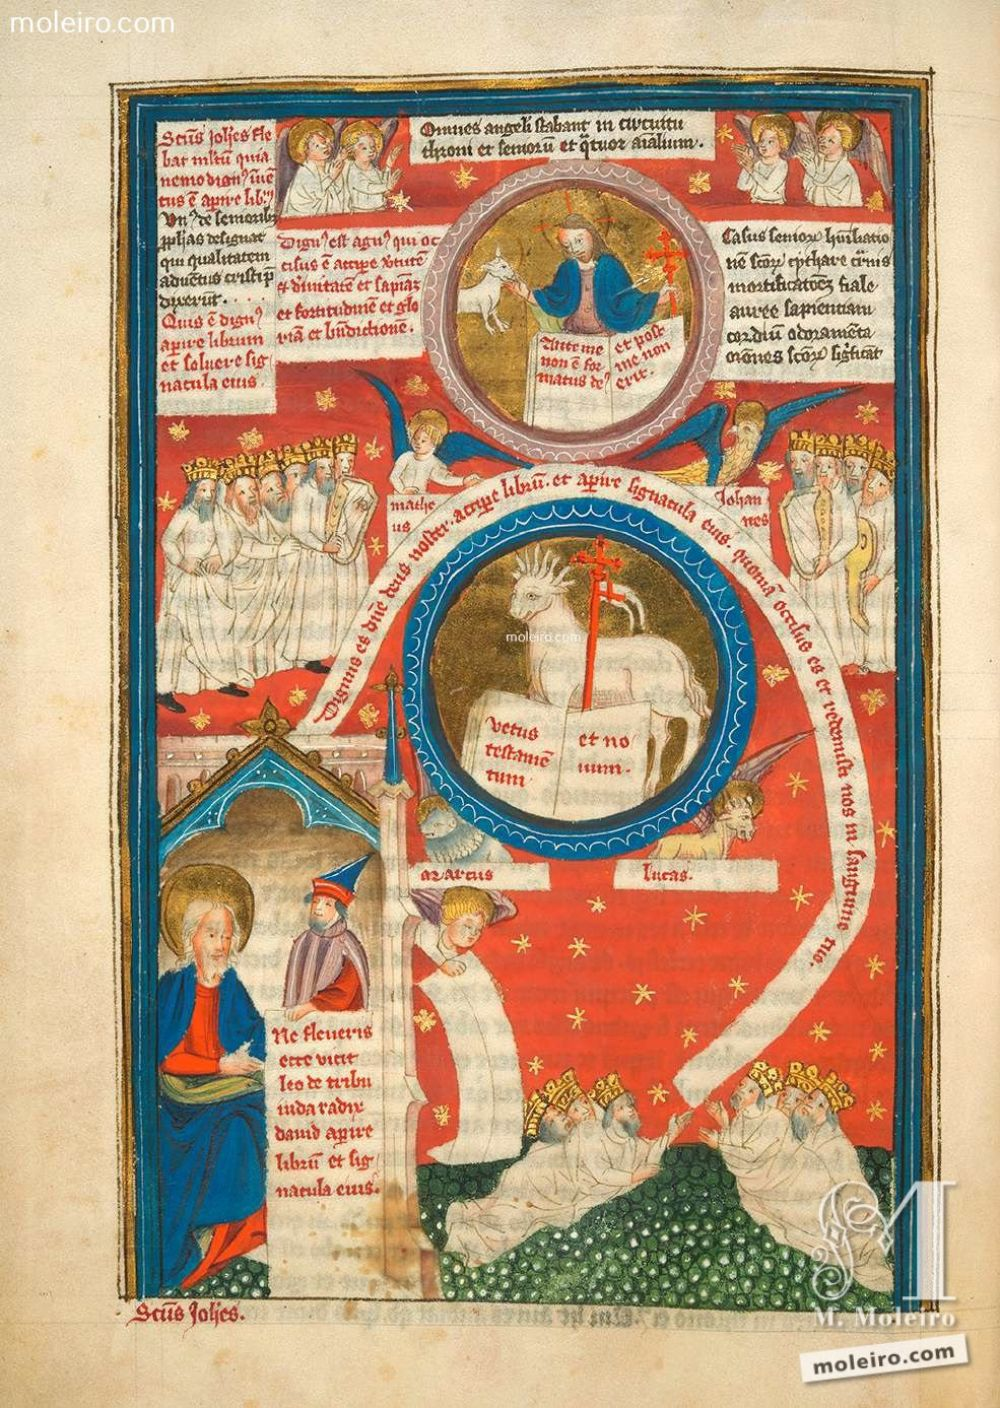 Miniature f. 6v · The Lamb receiving the book (Ap. 5, 6-14). Picture-book of the Life of St John andtheApocalypse,Add. Ms. 38121.The British Library, London. Illuminated manuscript from the XVth century.